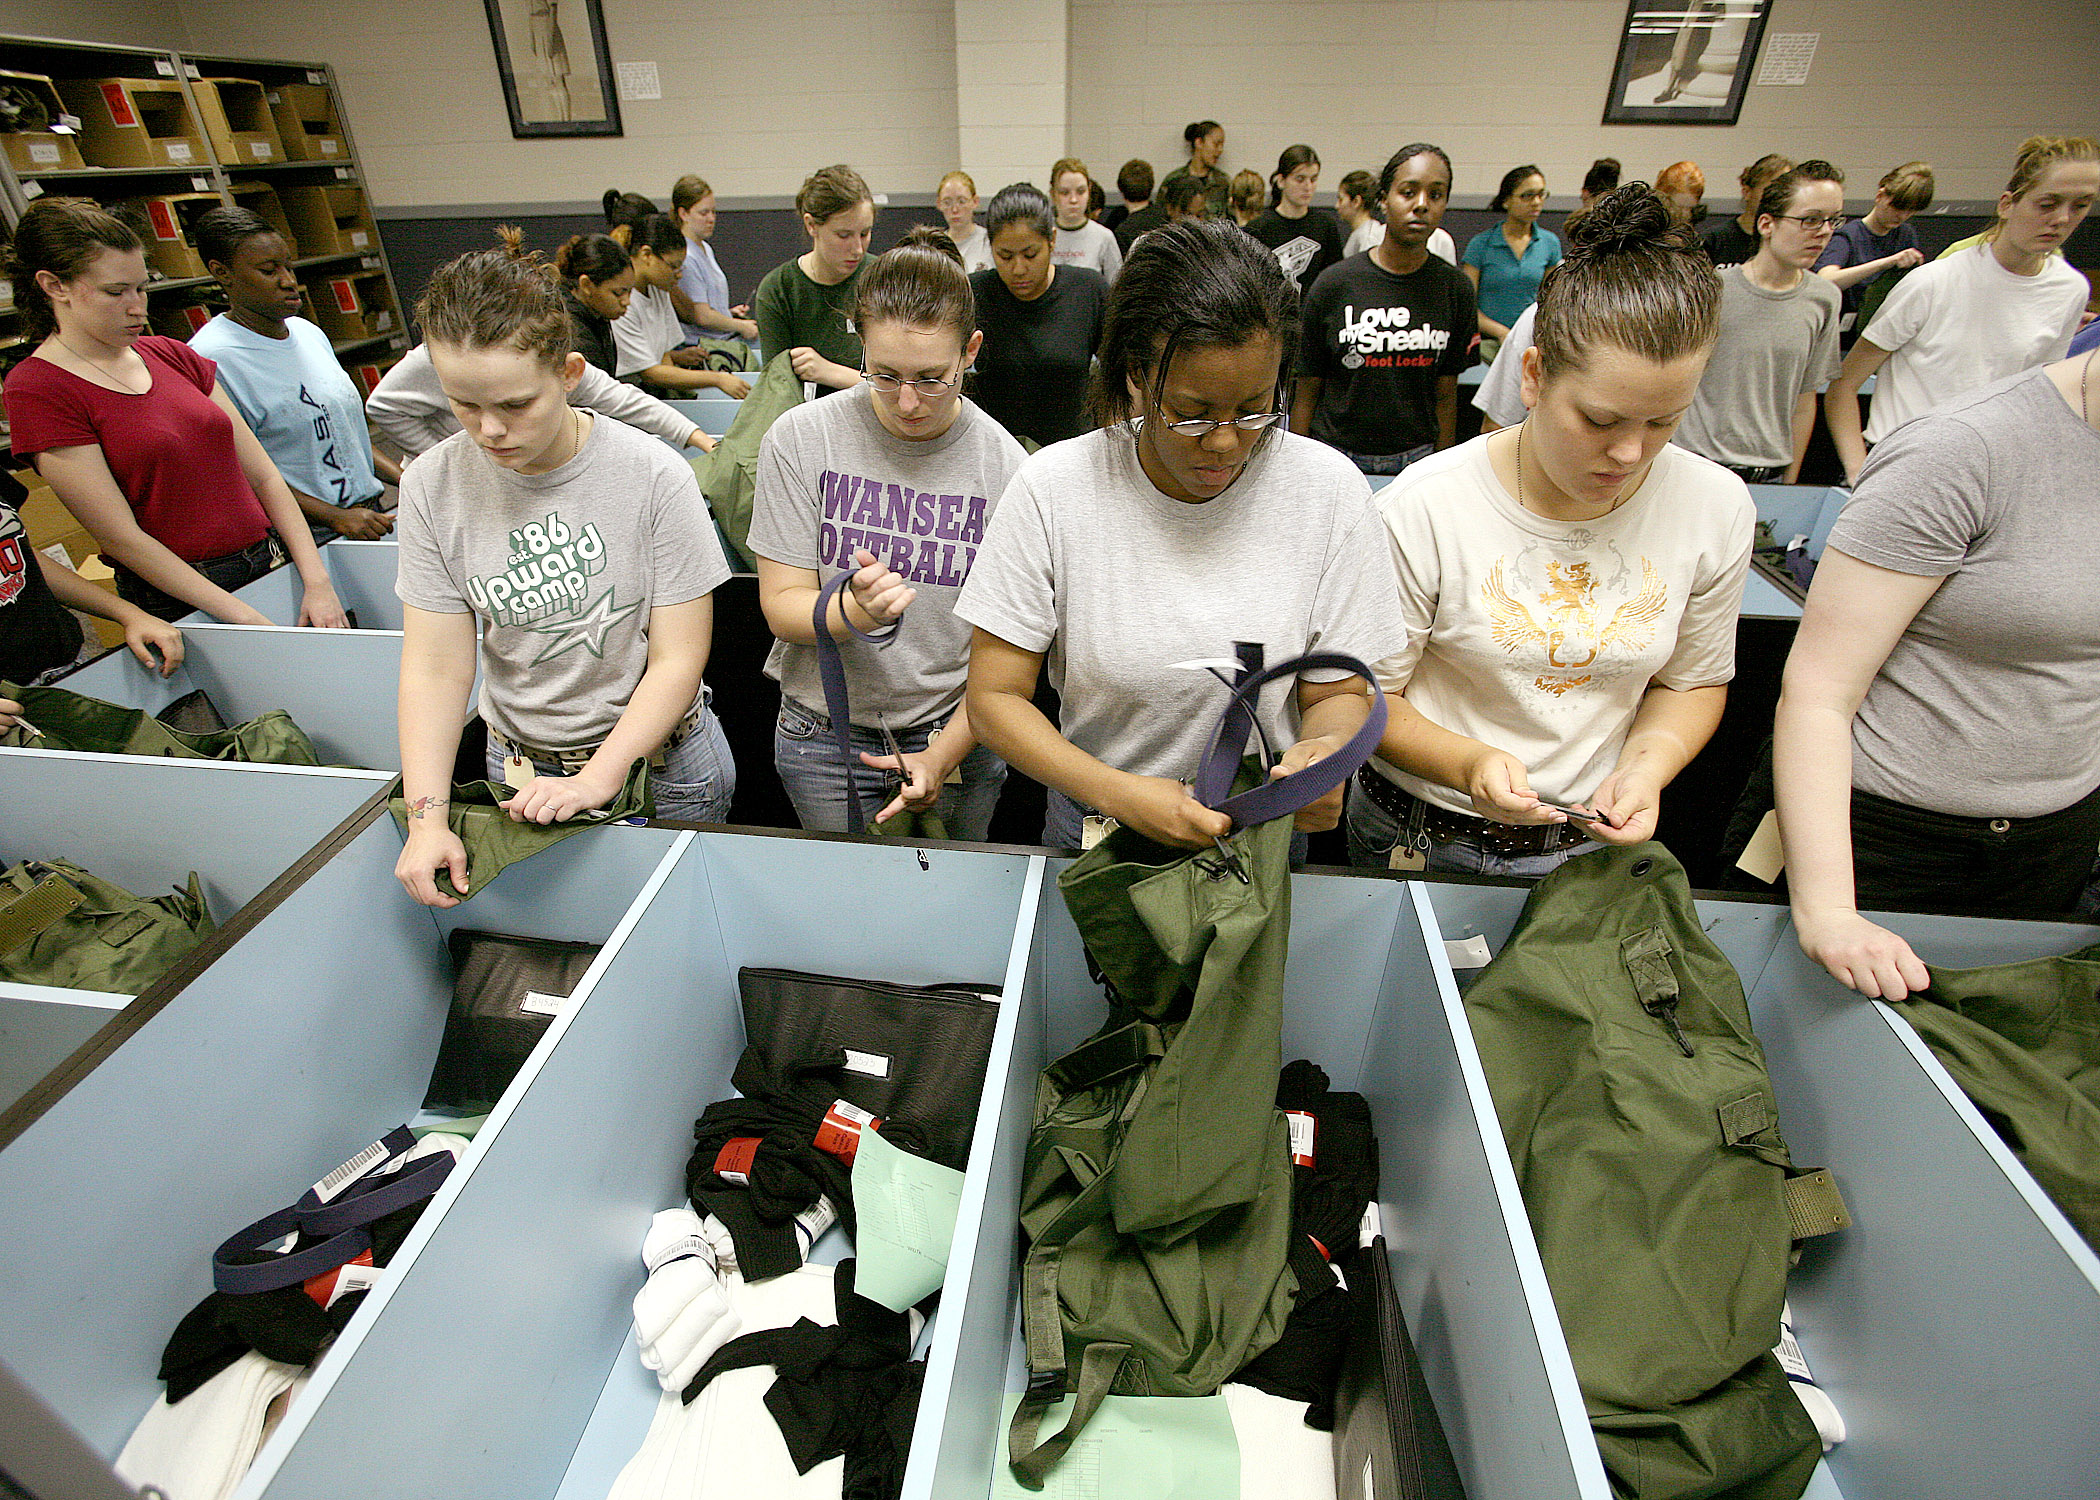 Giving Trainees A New Look Gt Joint Base San Antonio Gt News